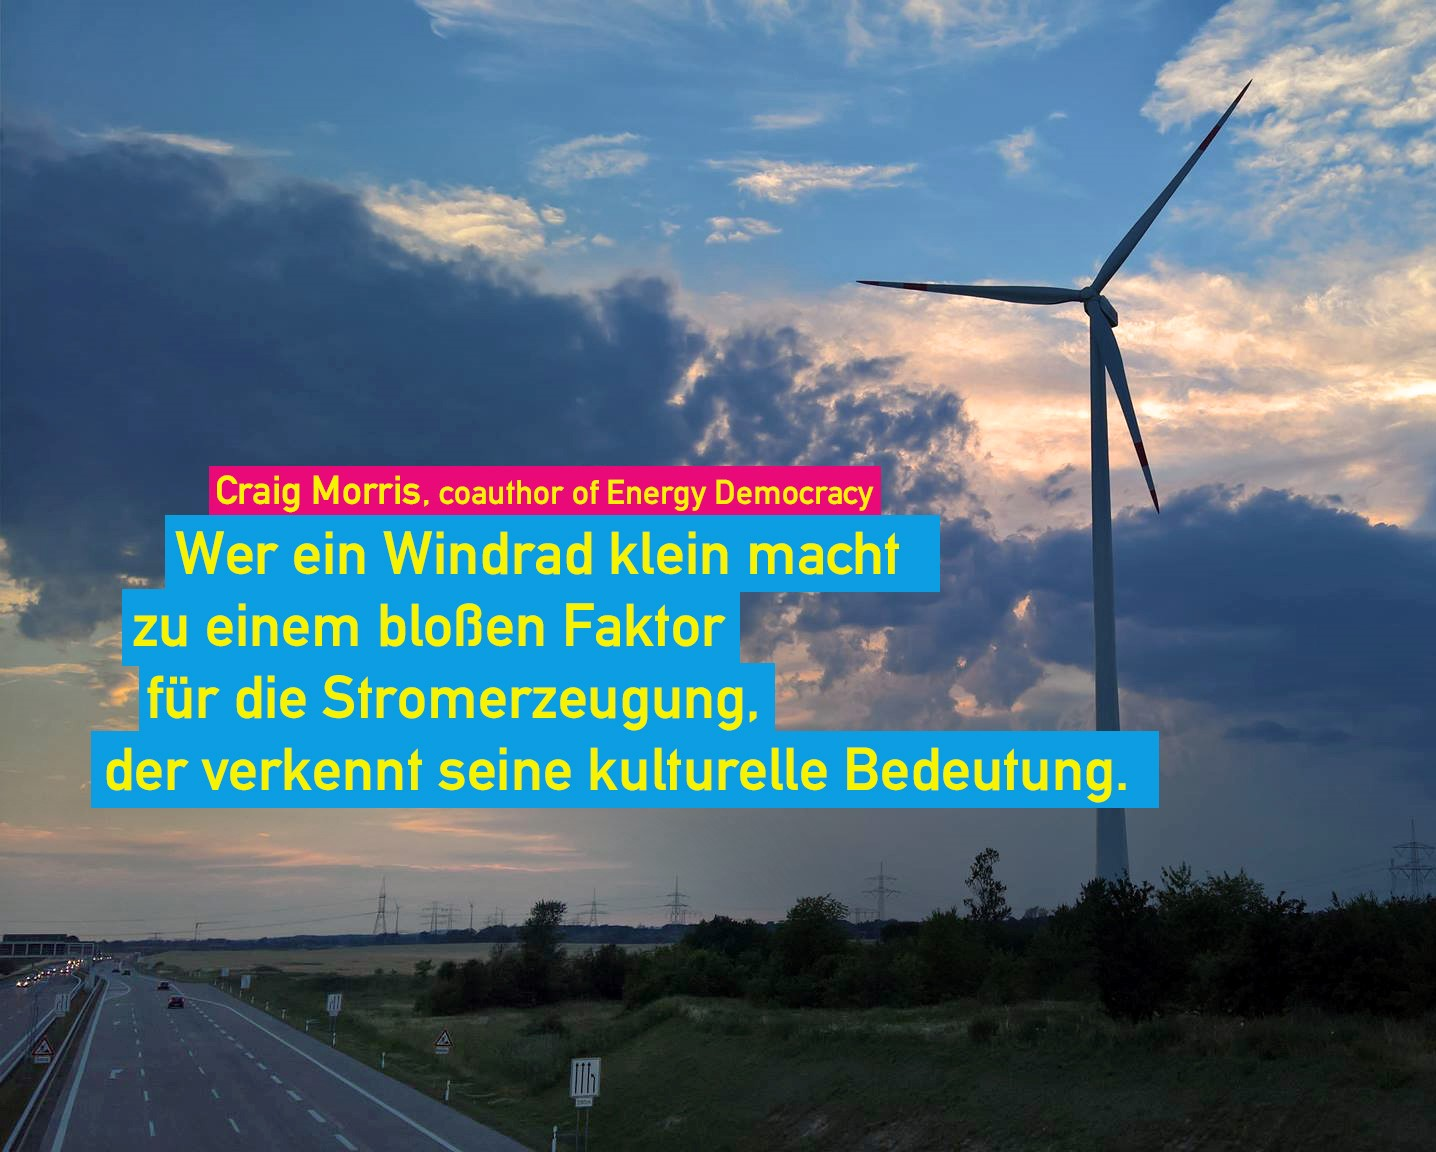 """Those who think of wind turbines merely in terms of power production overlook their cultural importance."""